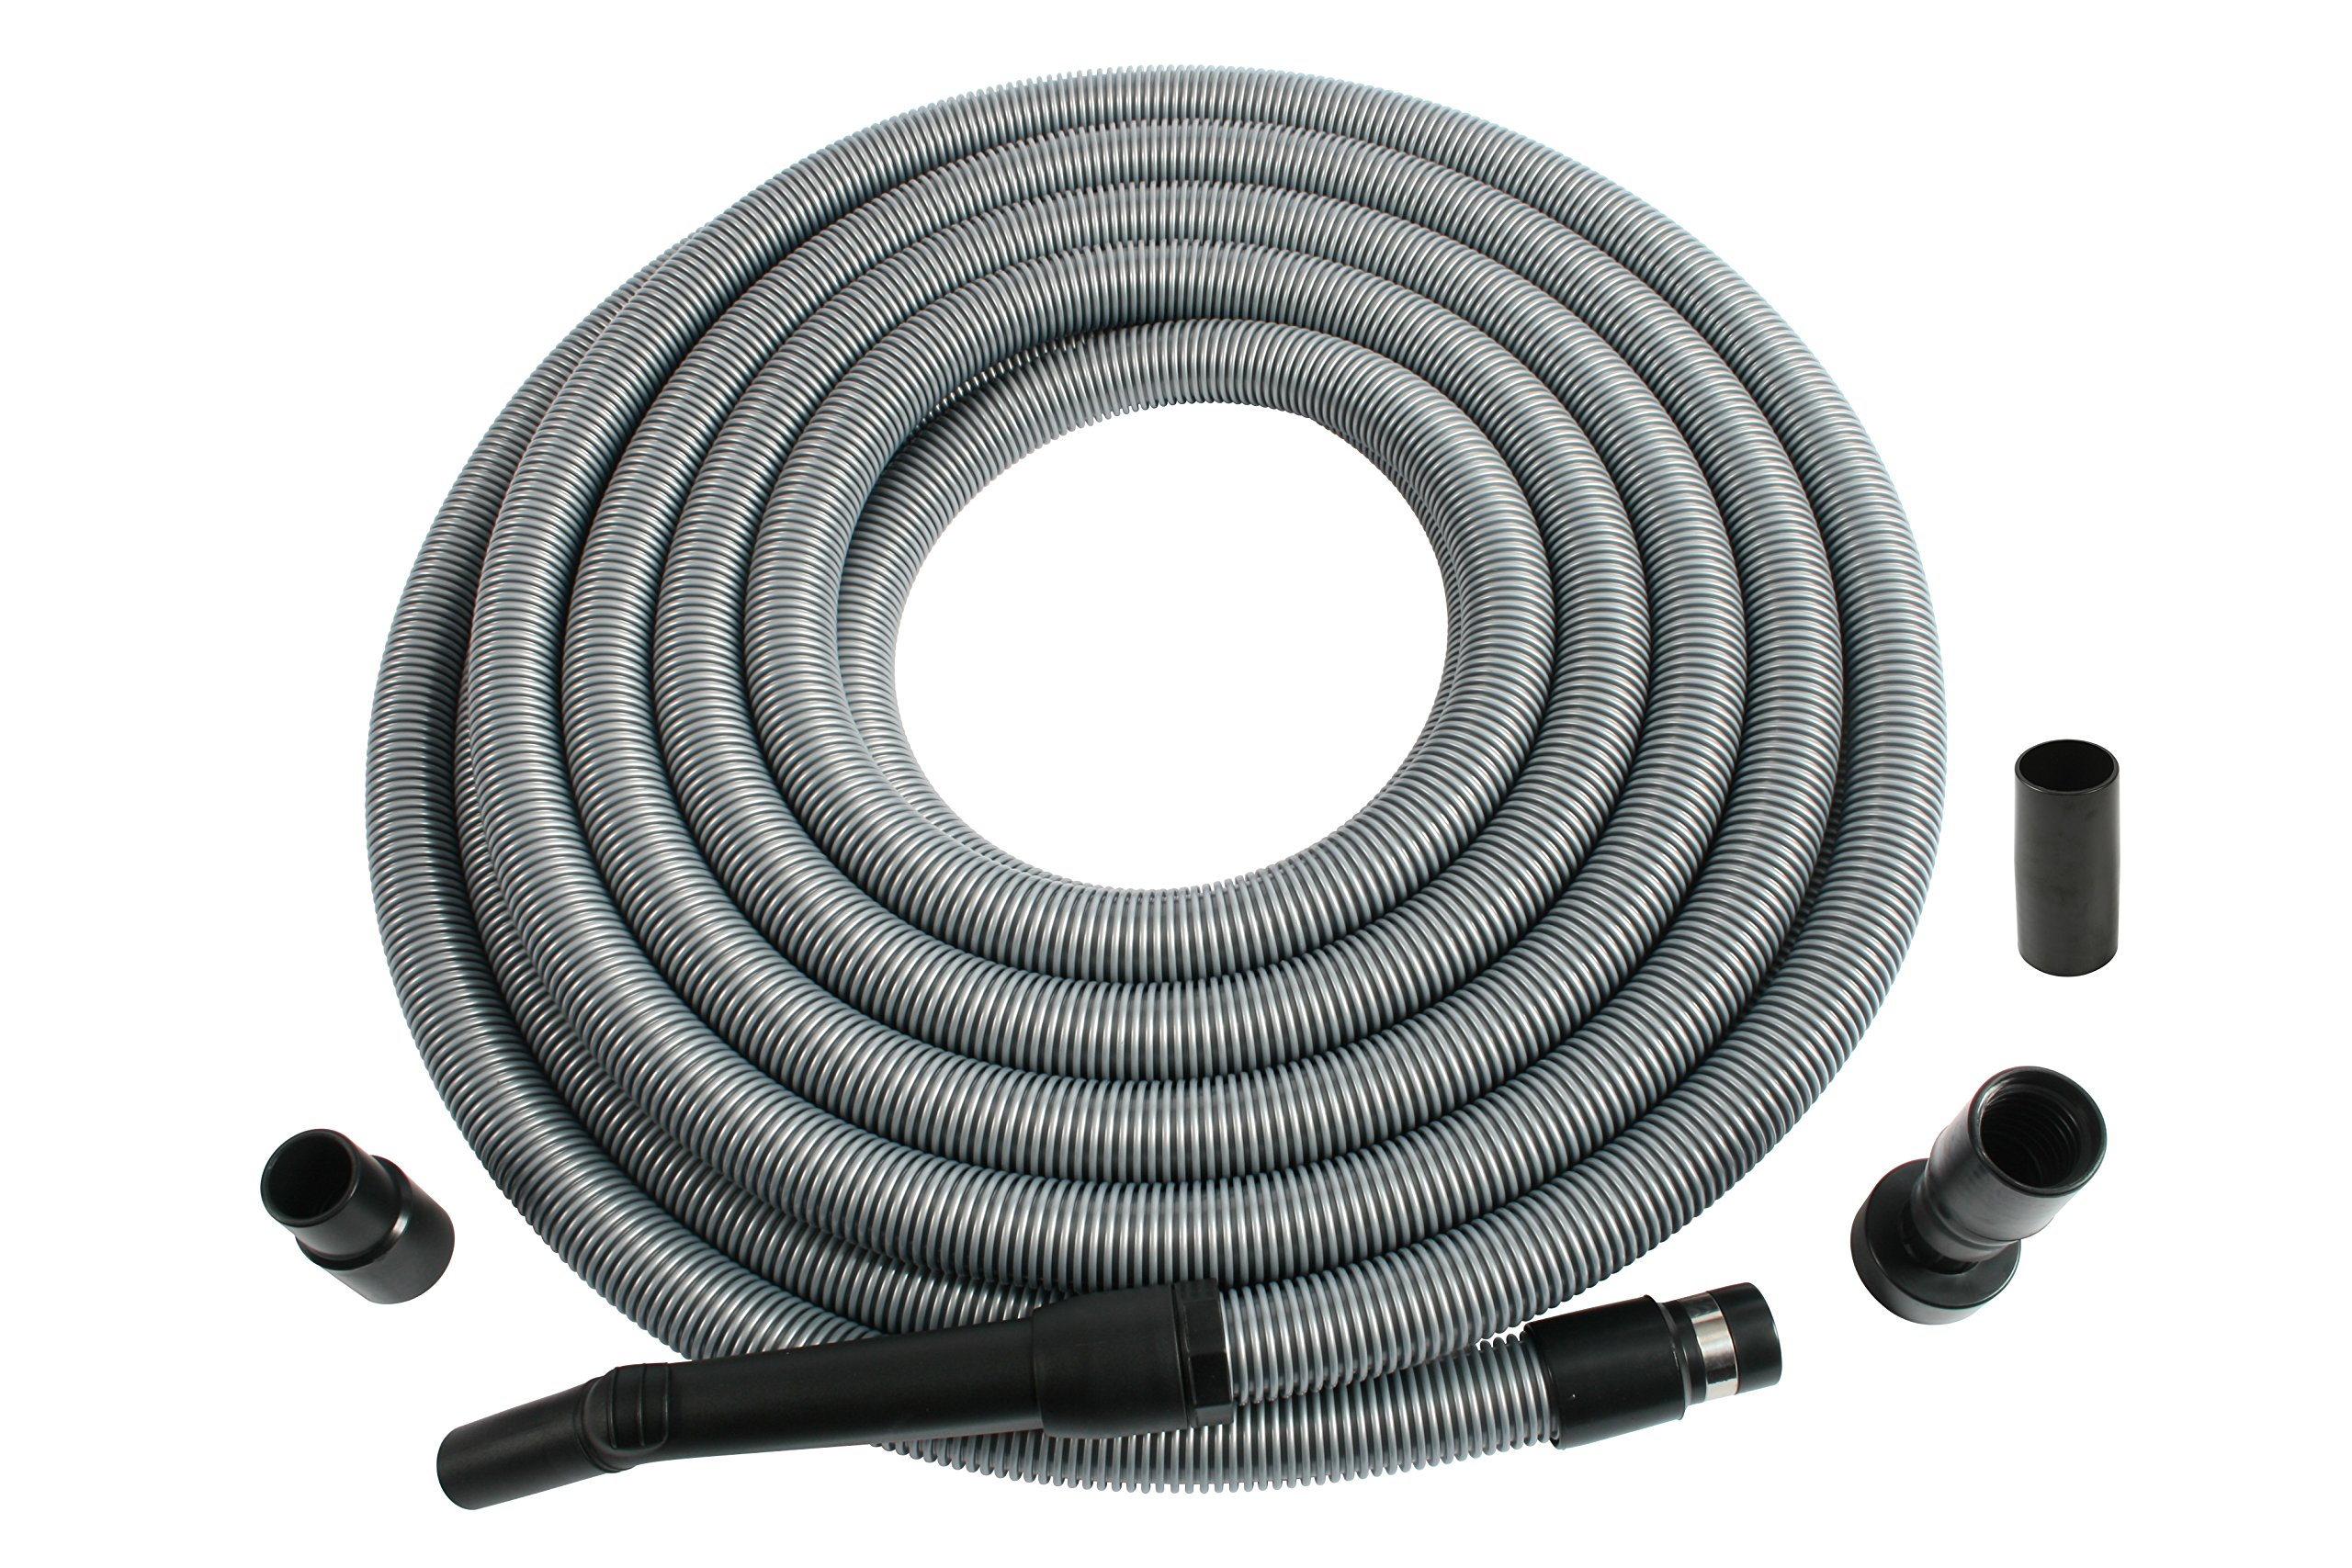 Cen-Tec Systems 50 Foot Extension Hose for Shop and Garage Vacuums by Centec Systems